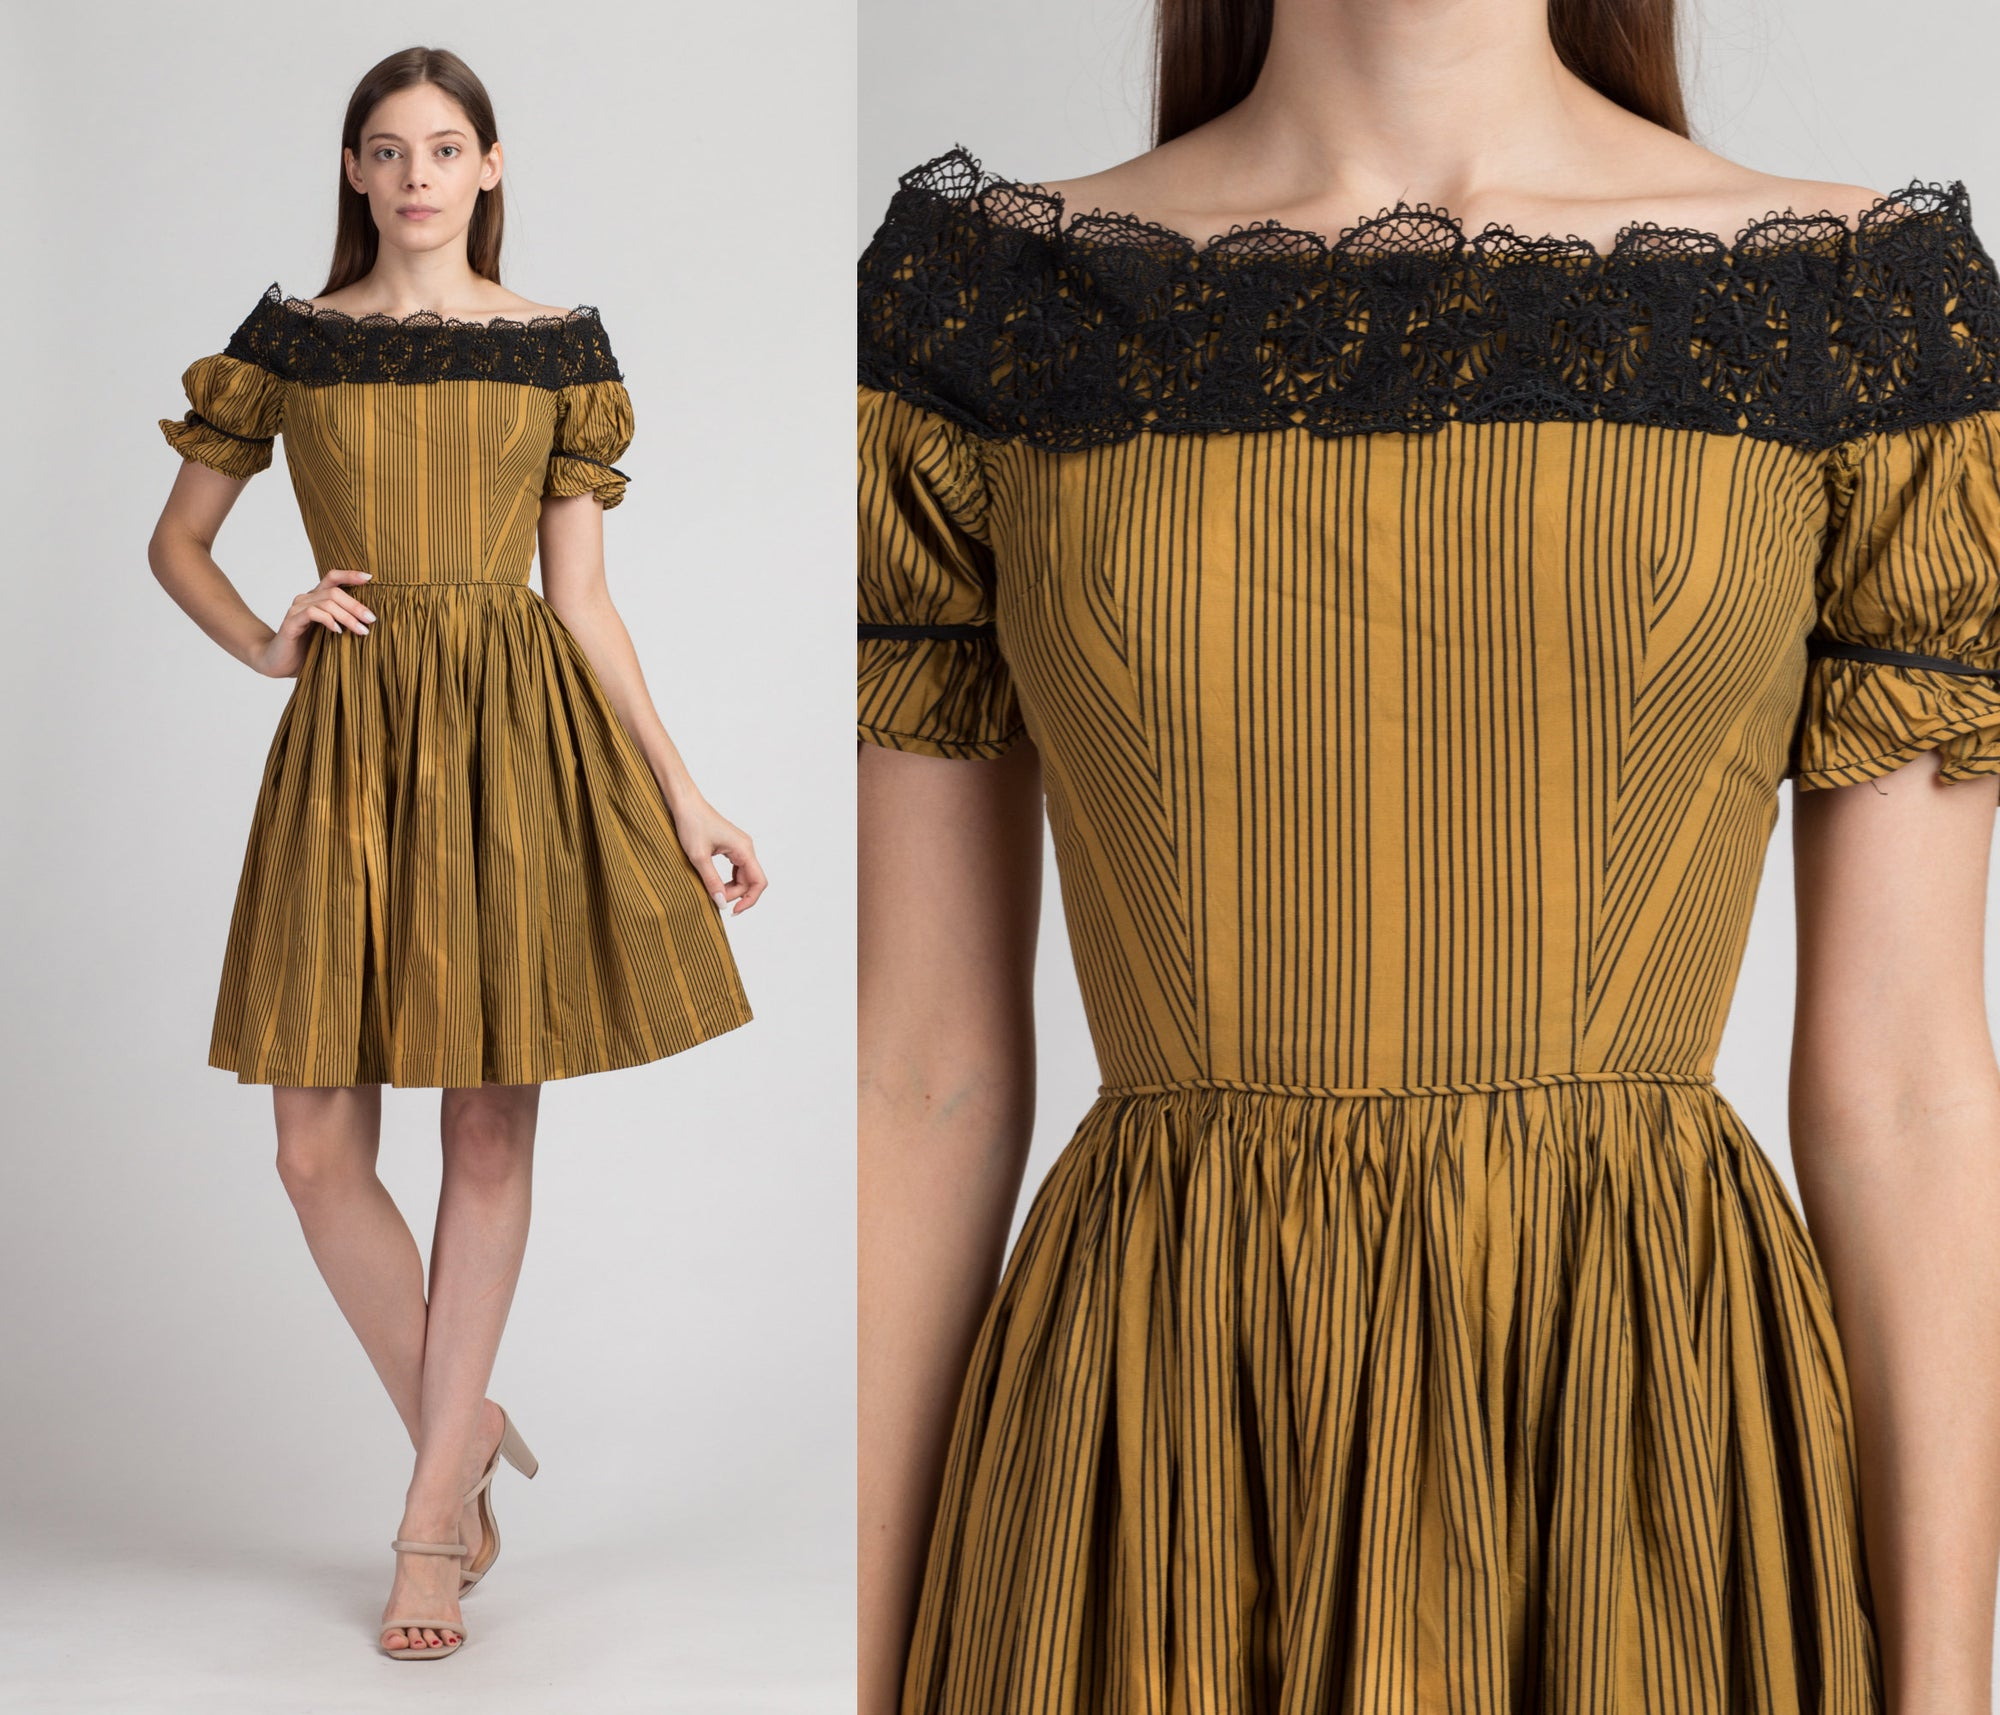 1950s Gold Striped Off-Shoulder Party Dress - Extra Small | Vintage 50s Lace Trim Puff Sleeve Mini Fit & Flare